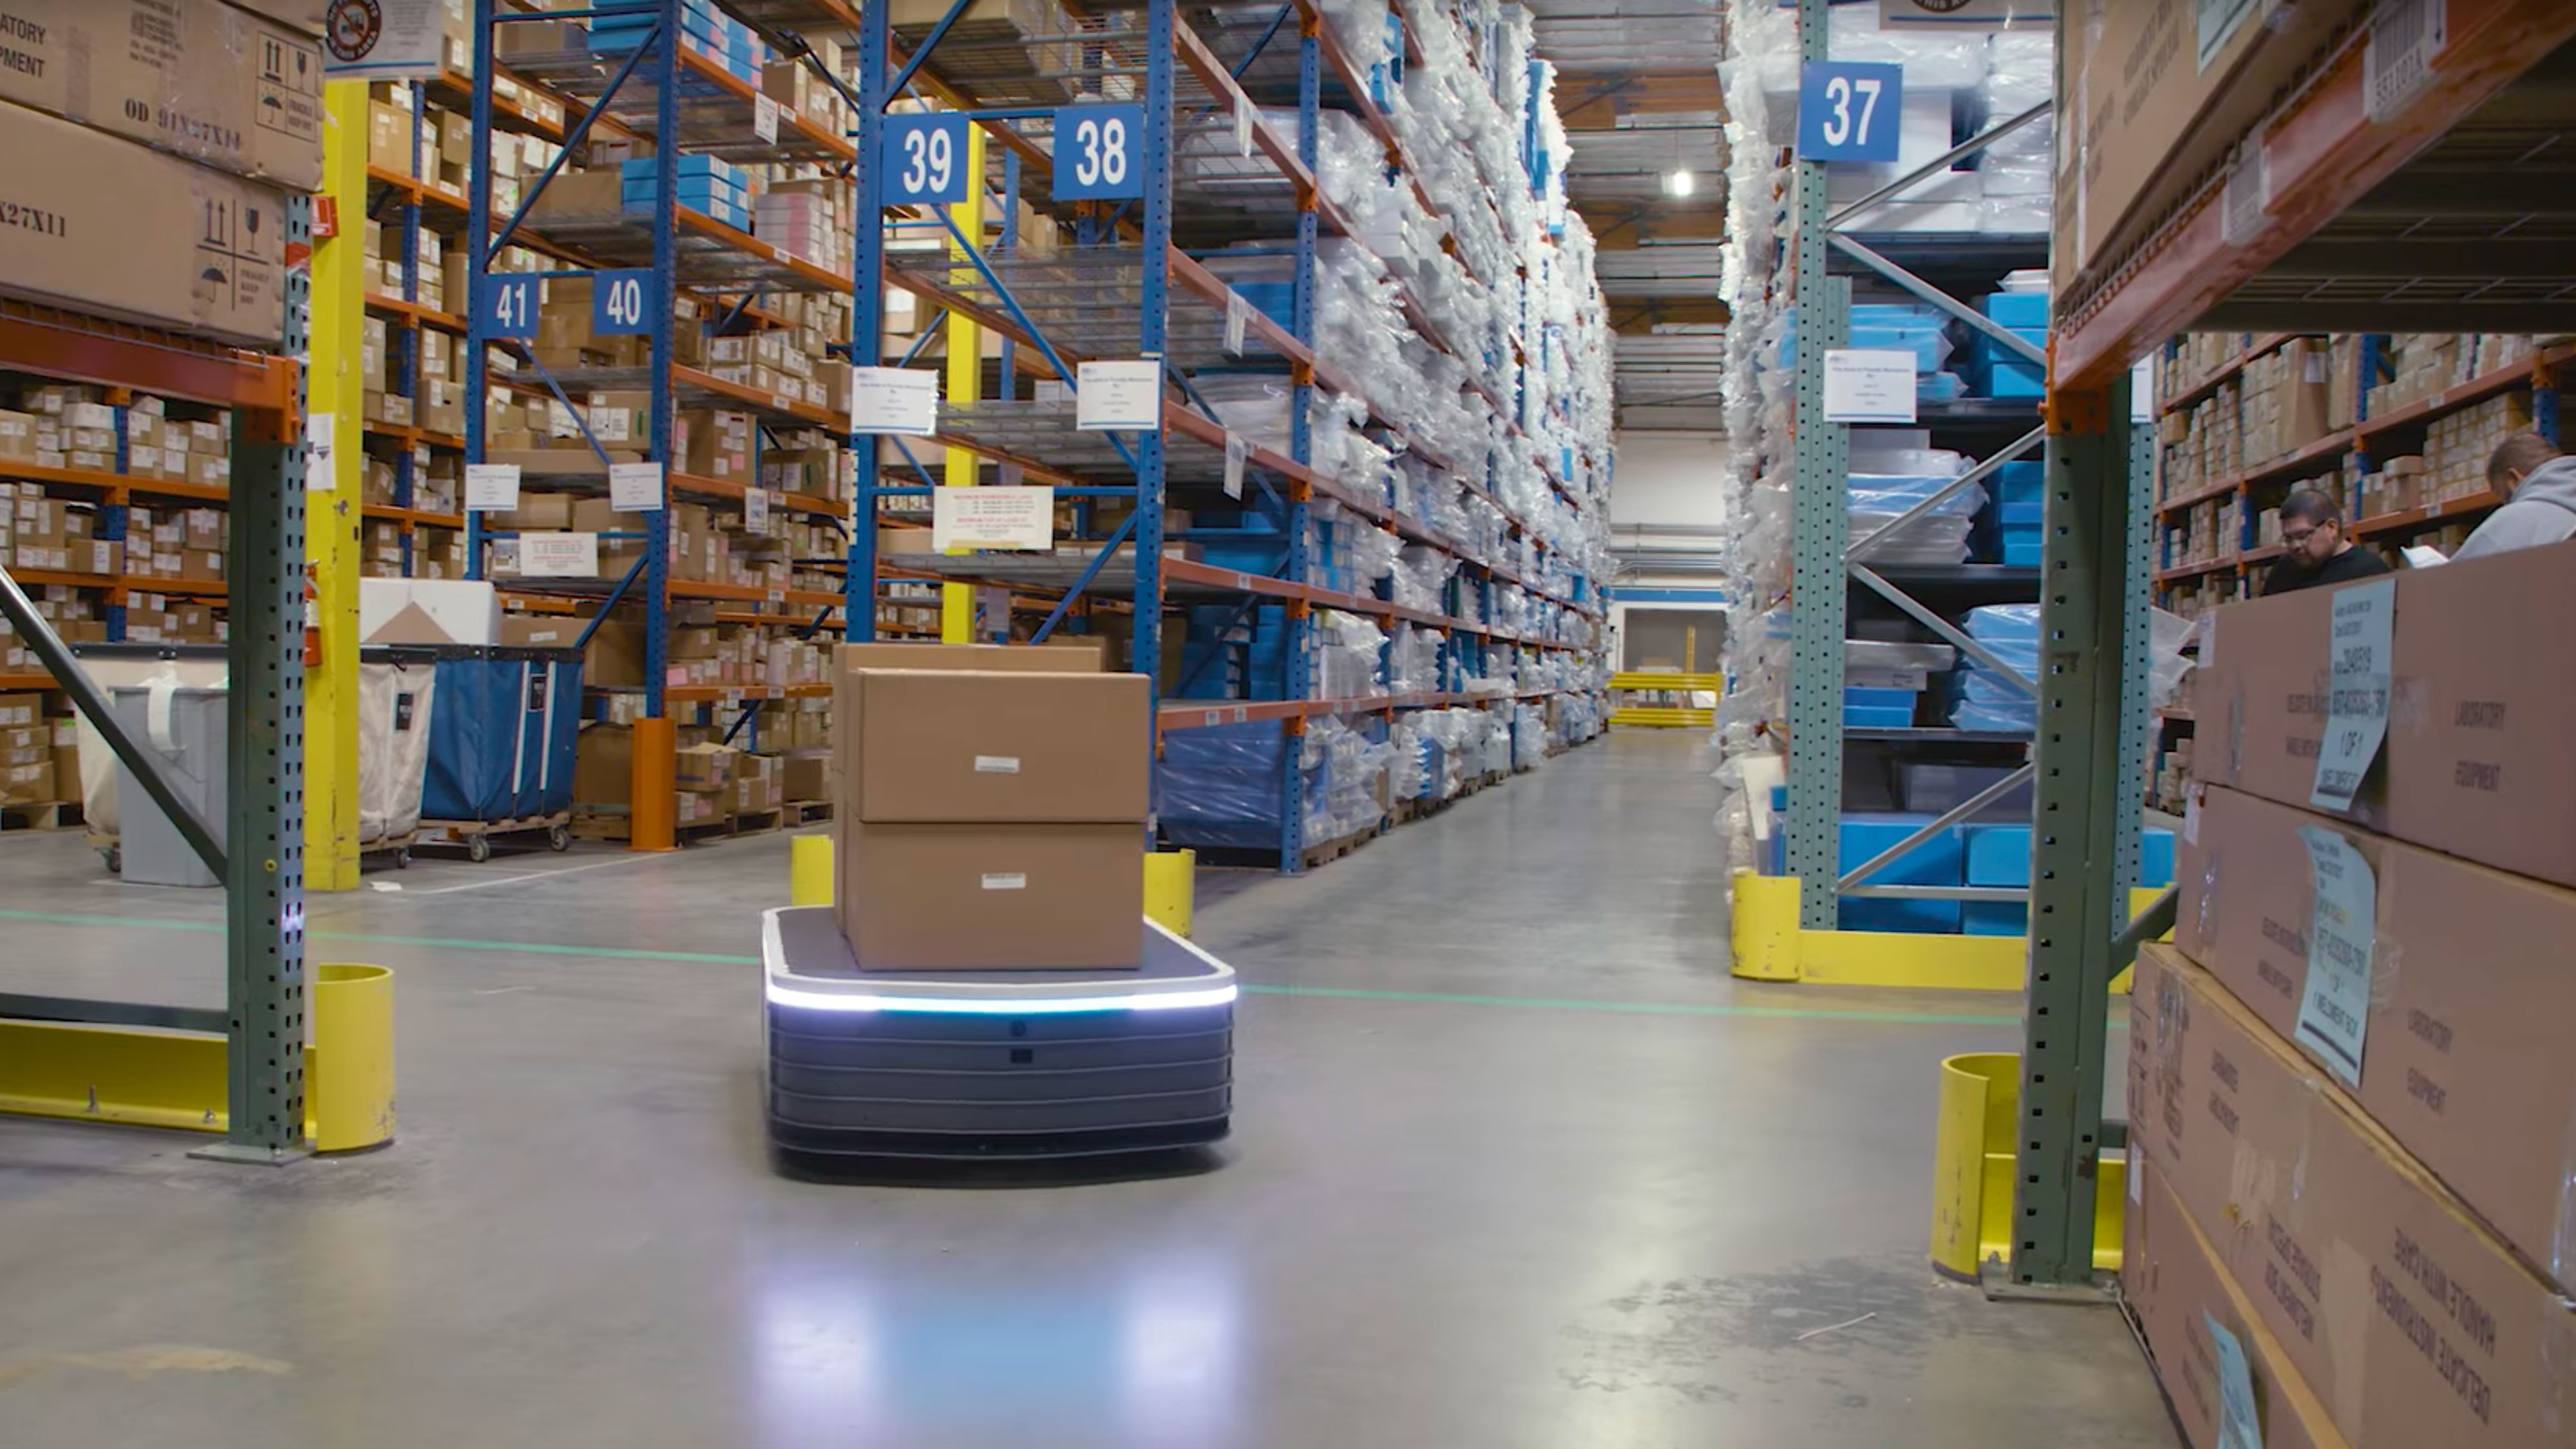 This Robot Will Haul Up to 1,500 Kilos Around a Warehouse